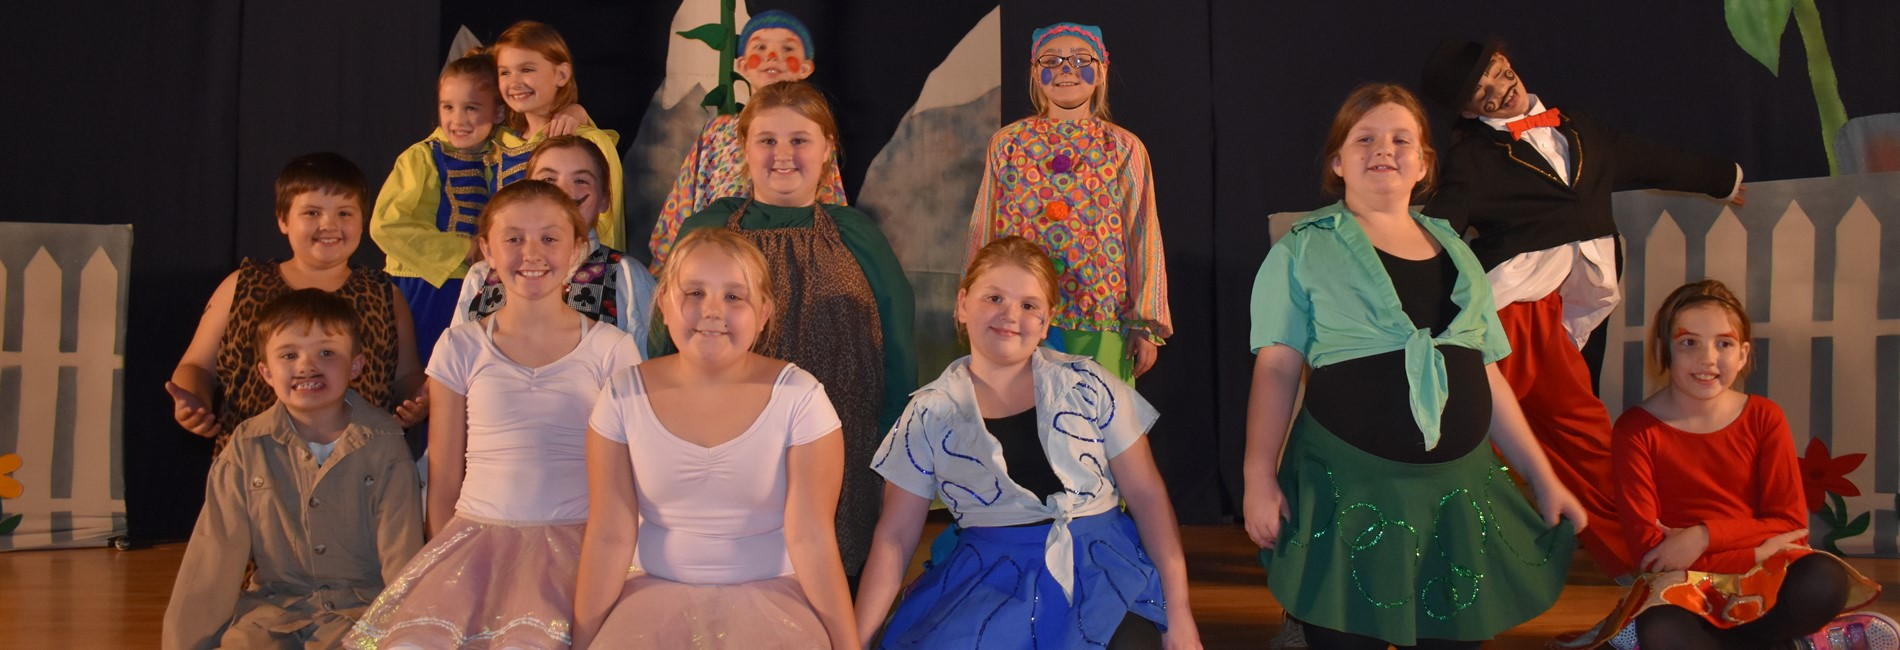 Missoula Children's Theatre (MCT) and more than 50 local students brought Jack and the Beanstalk to the stage.